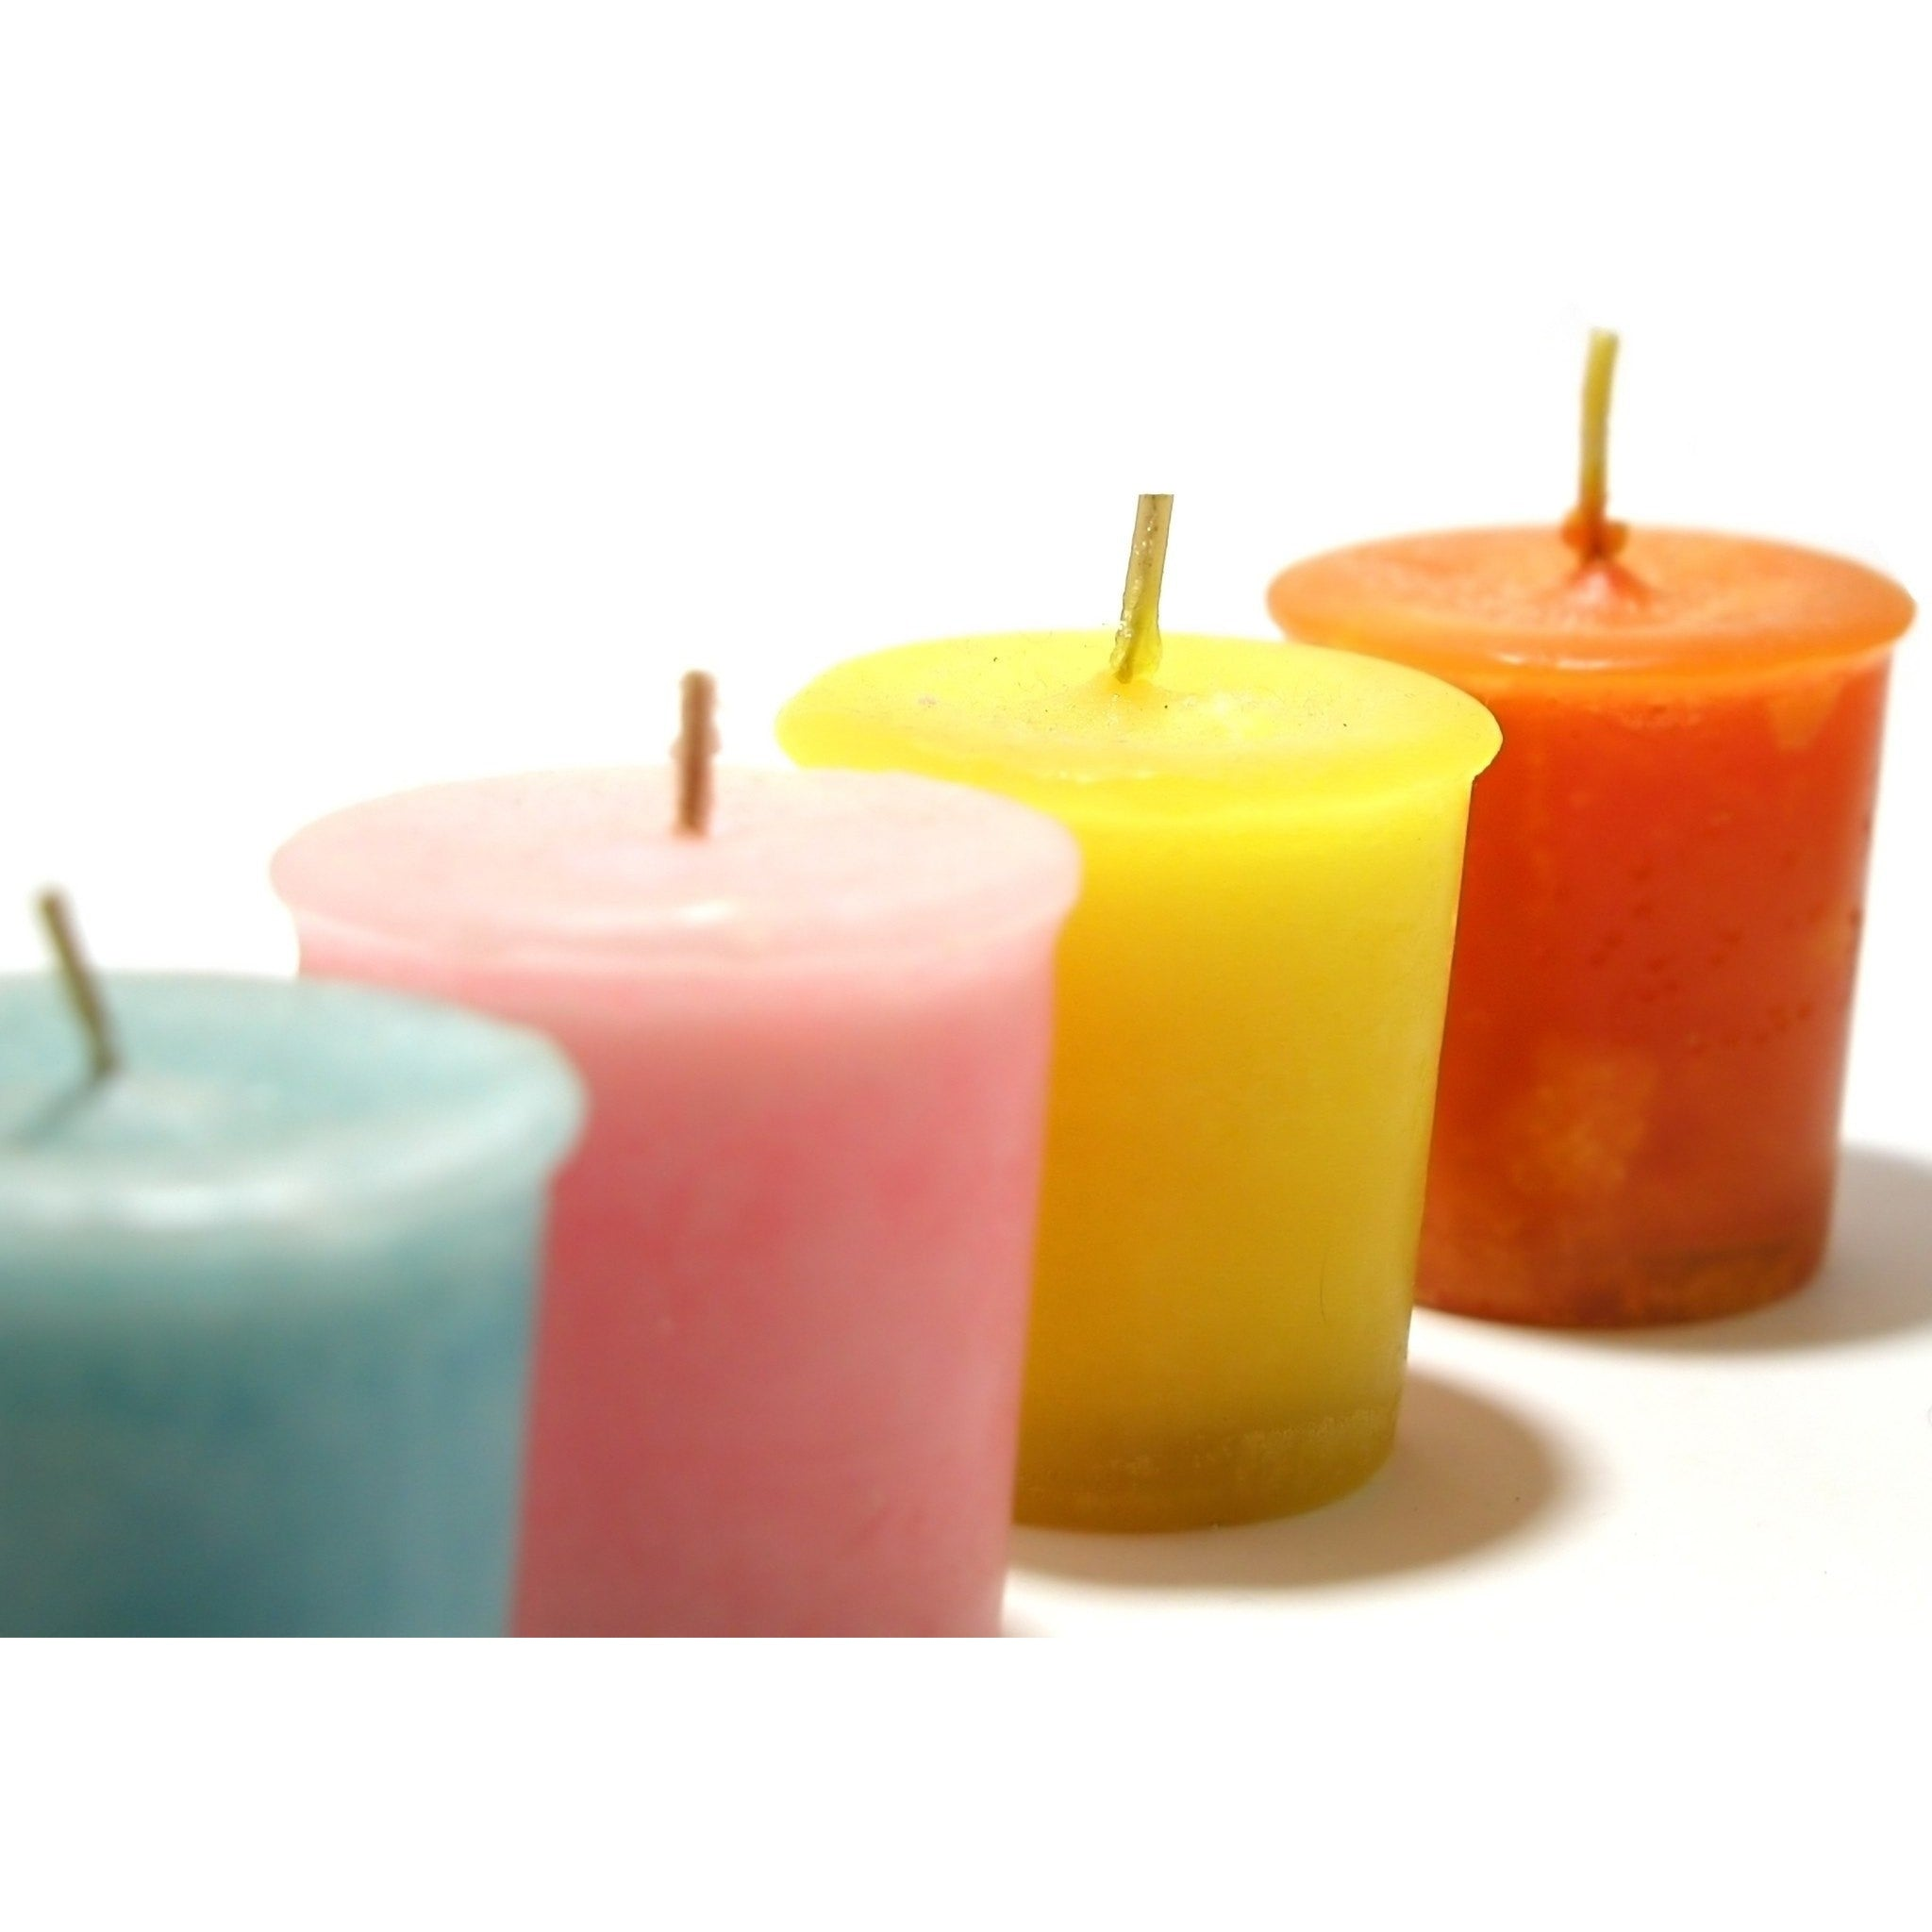 Sweet Honeysuckle Natural Hand Poured Soy Candles - Votive-Single - Bella-Mia Naturals All Natural Soy Candles & Lip Balms - 9